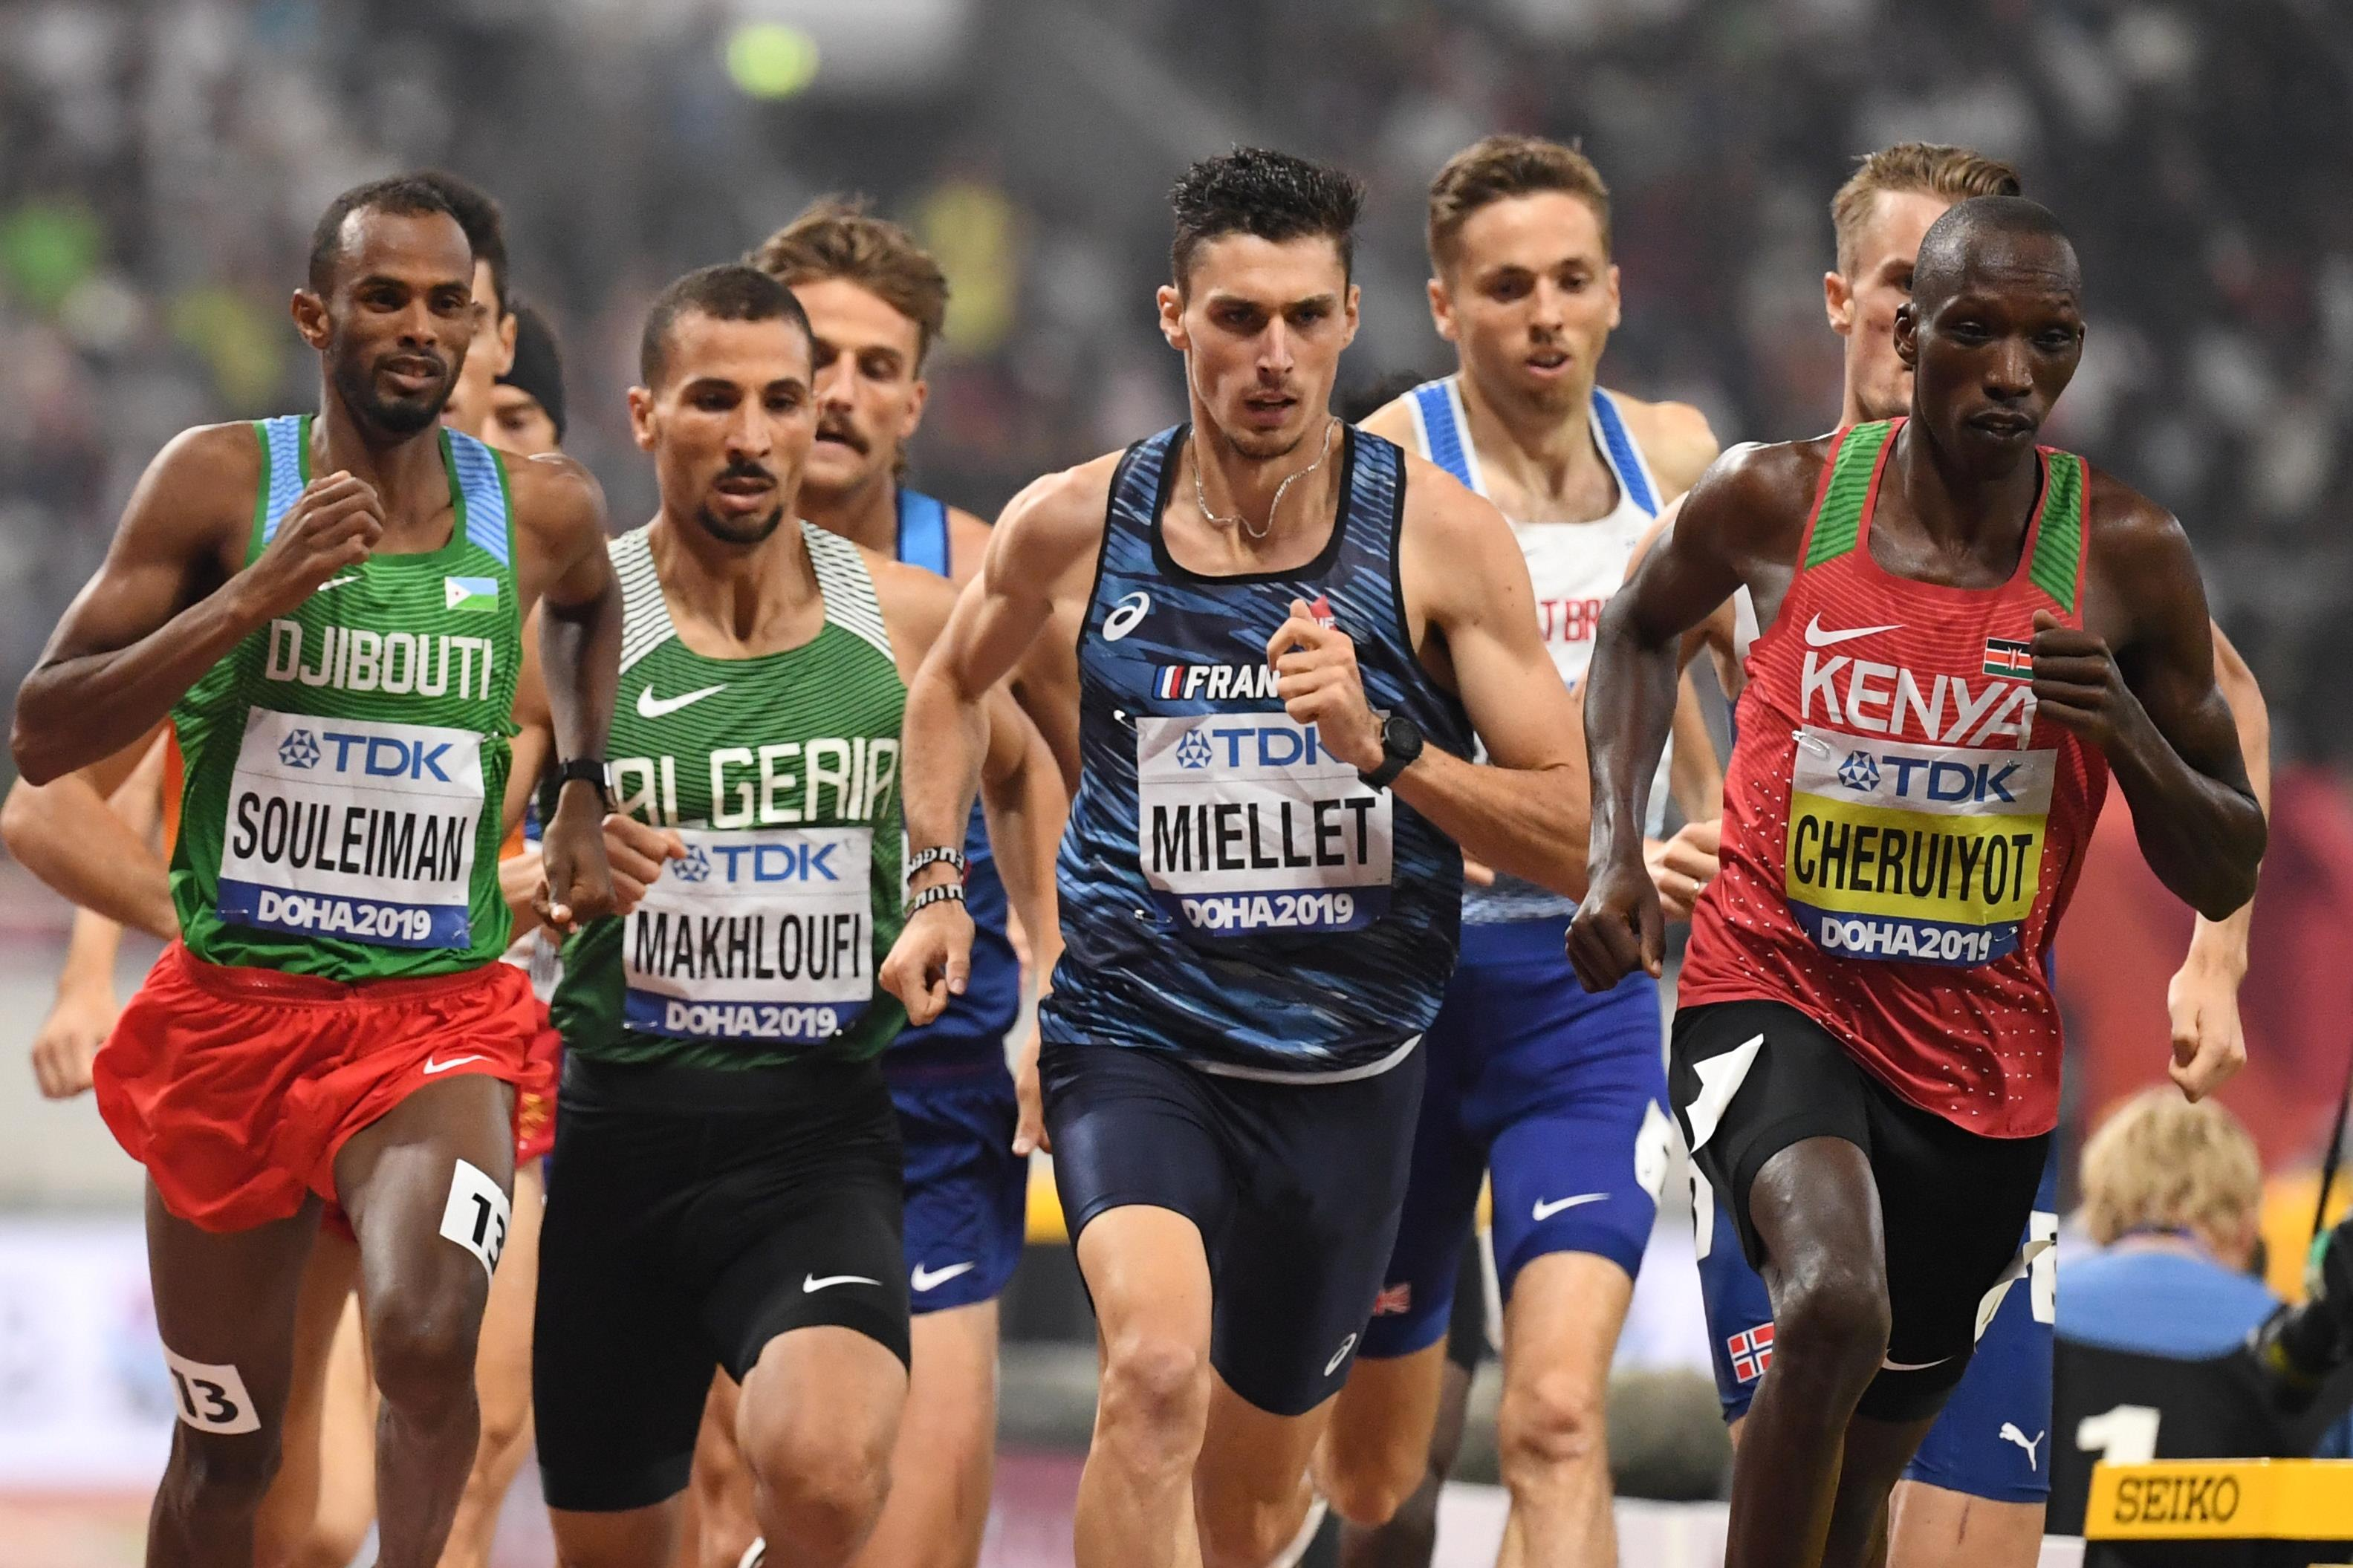 Action from the men's 1500m at the World Championships (AFP / Getty Images)